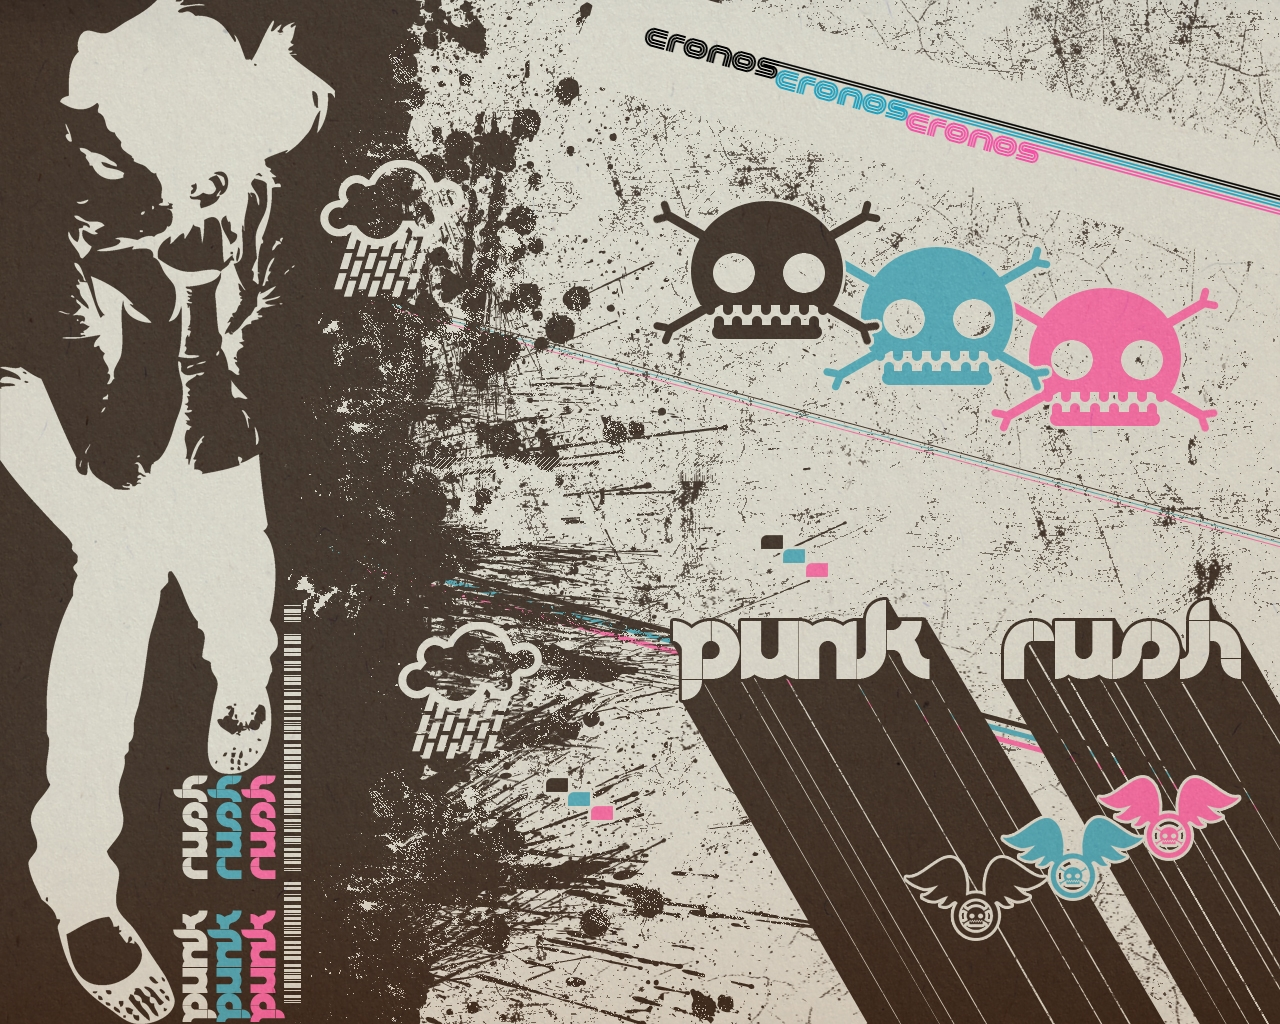 PC 1280x1024 Punk Wallpaper, BsnSCB Graphics